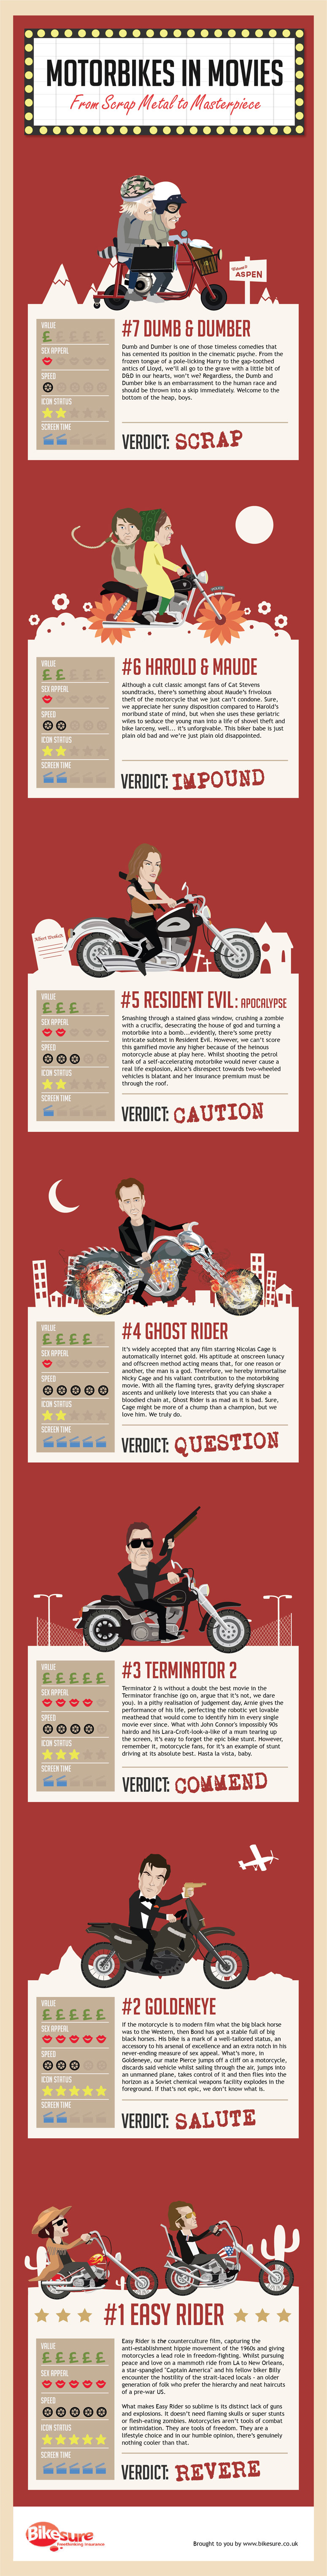 Motorbikes-In-Movies-Infographic